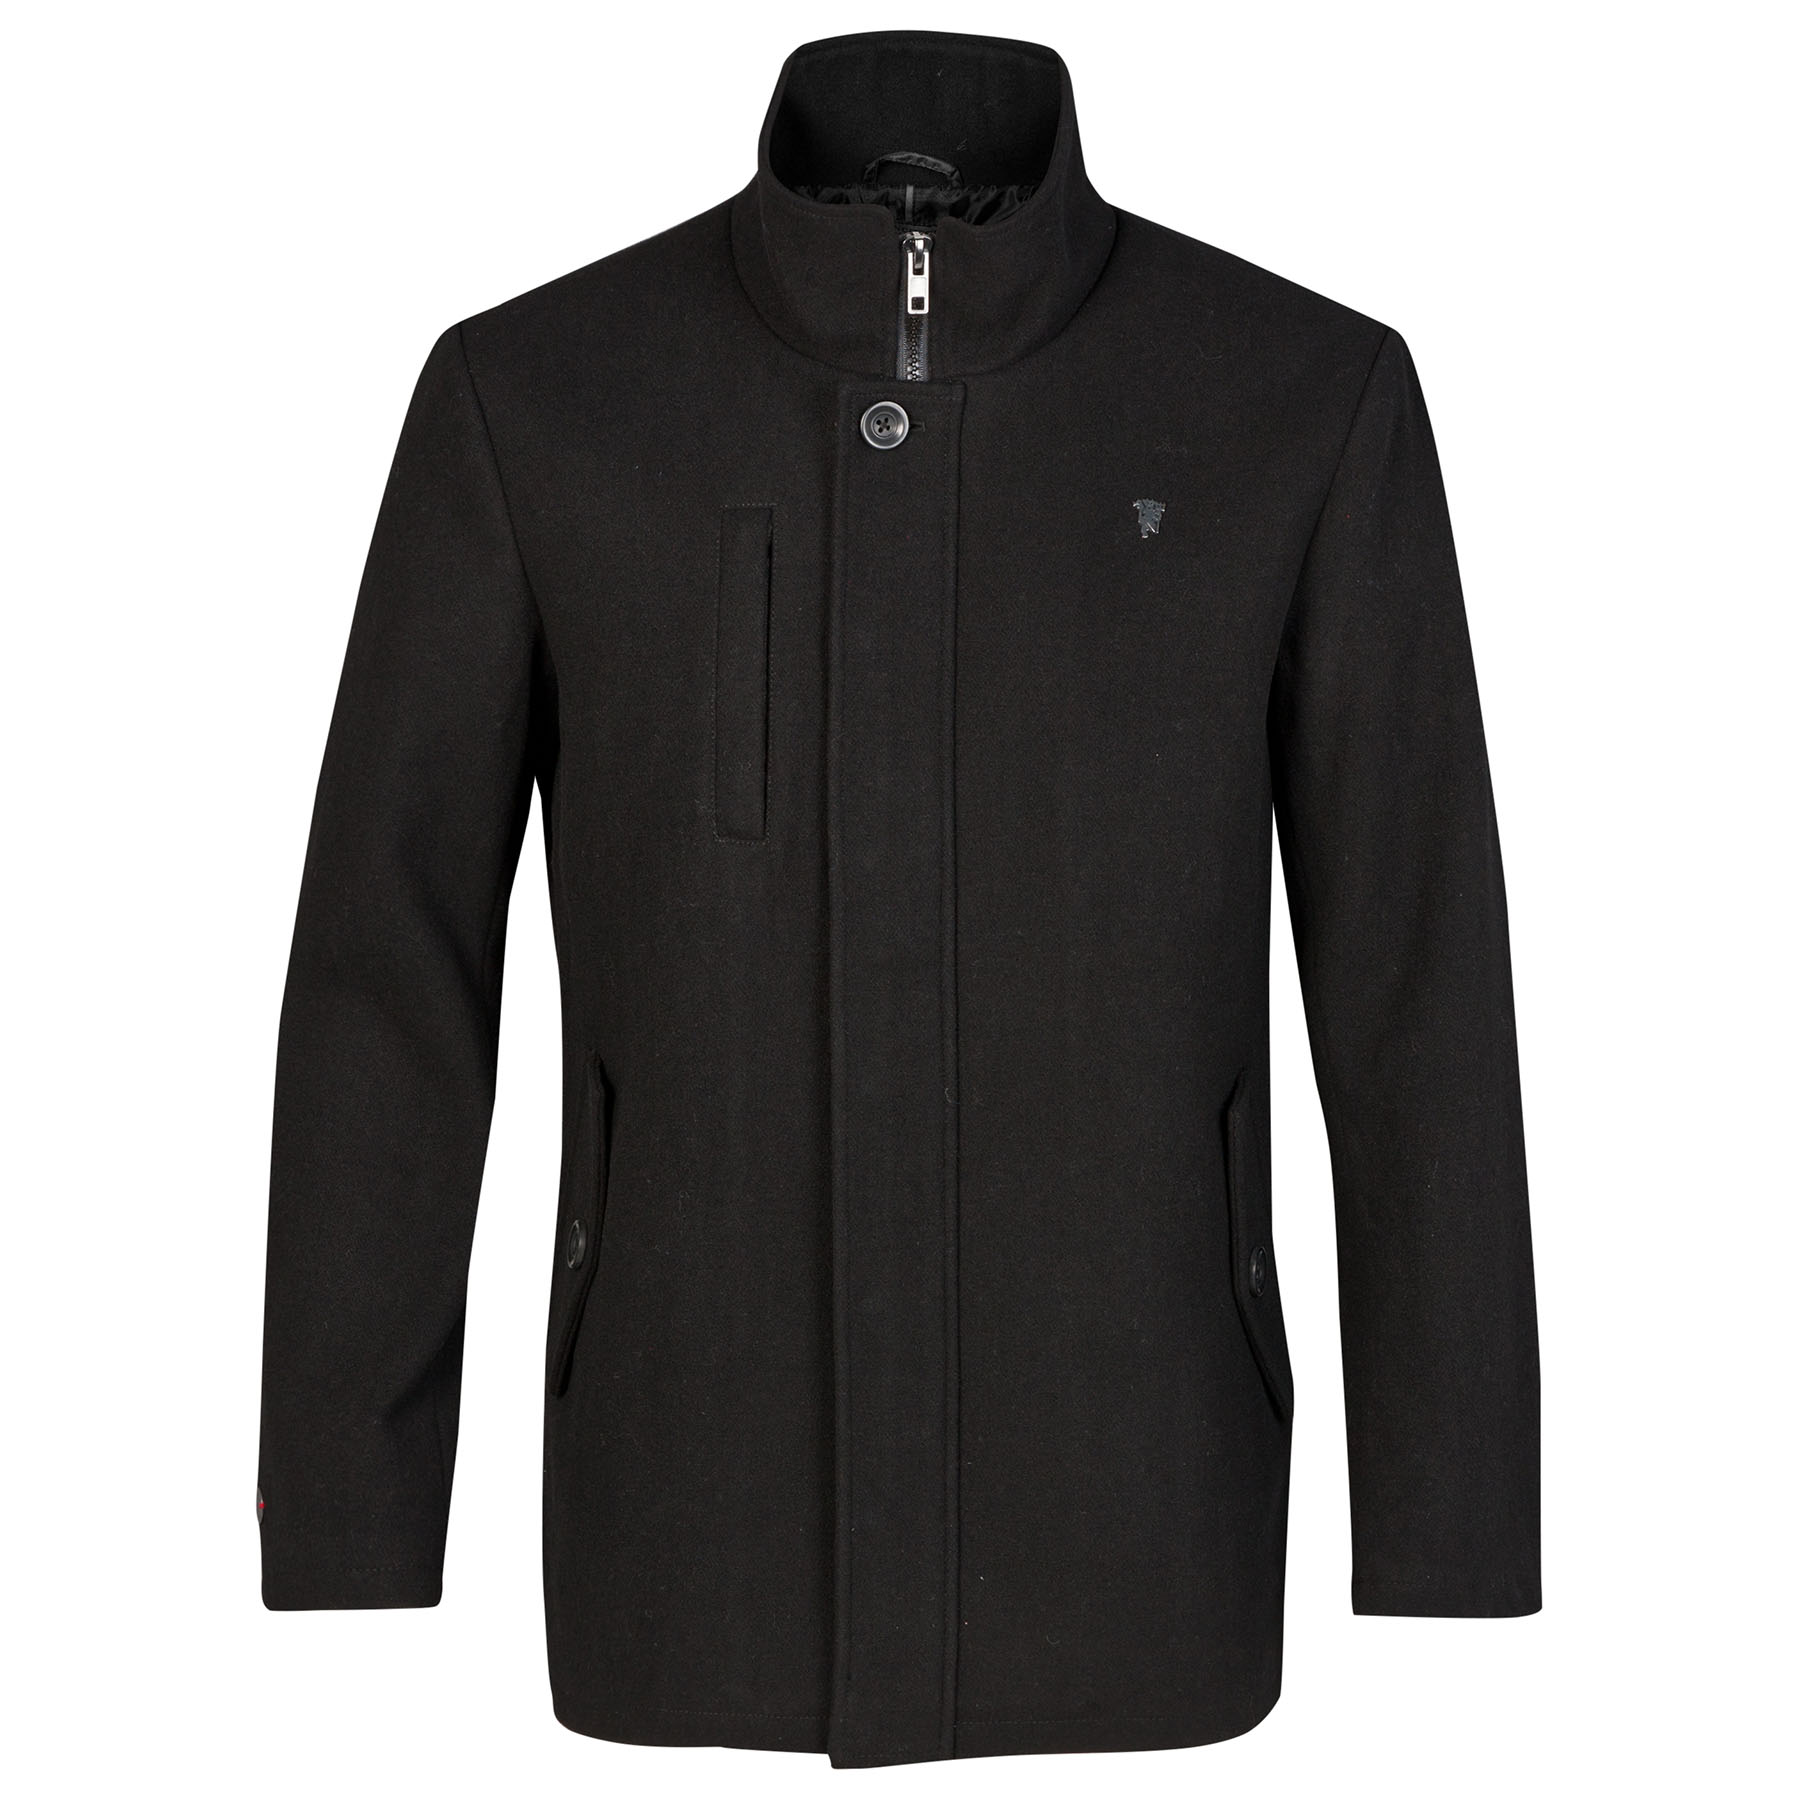 Manchester United Red Label Melton Wool Coat - Black - Mens